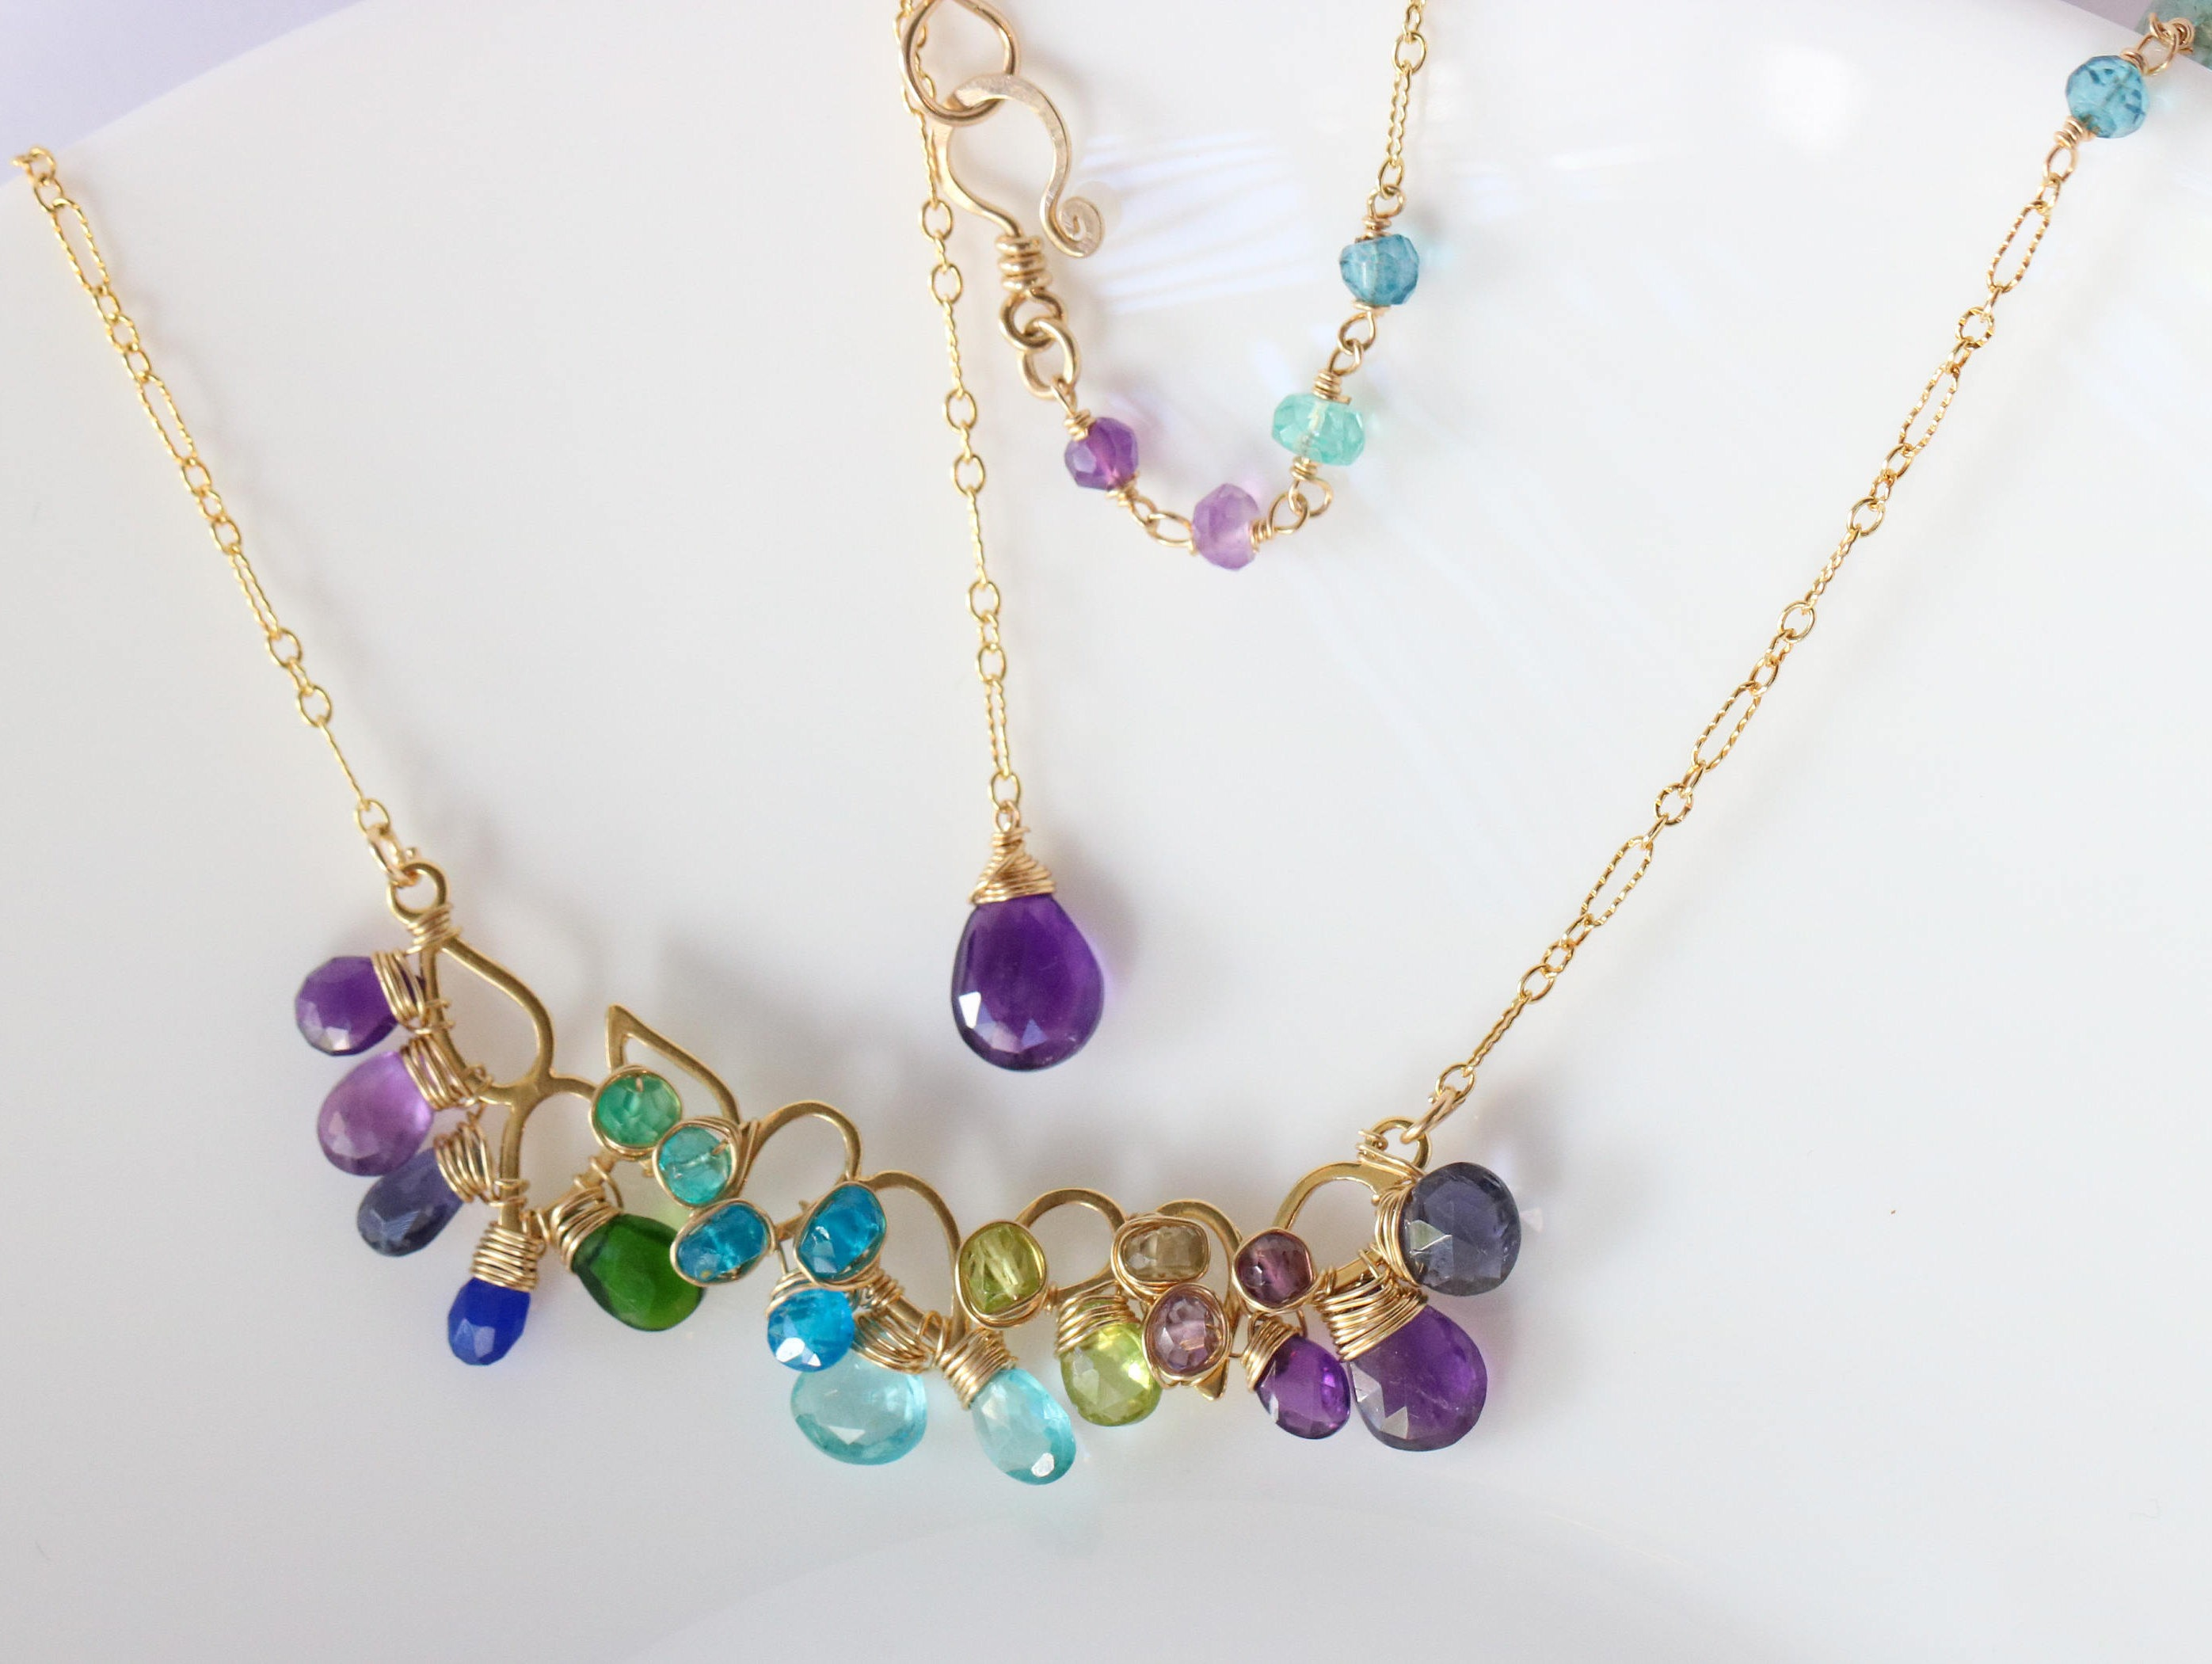 jewelry iches yellow inches station multi necklace stone long gold island gemstone stores fortunoff